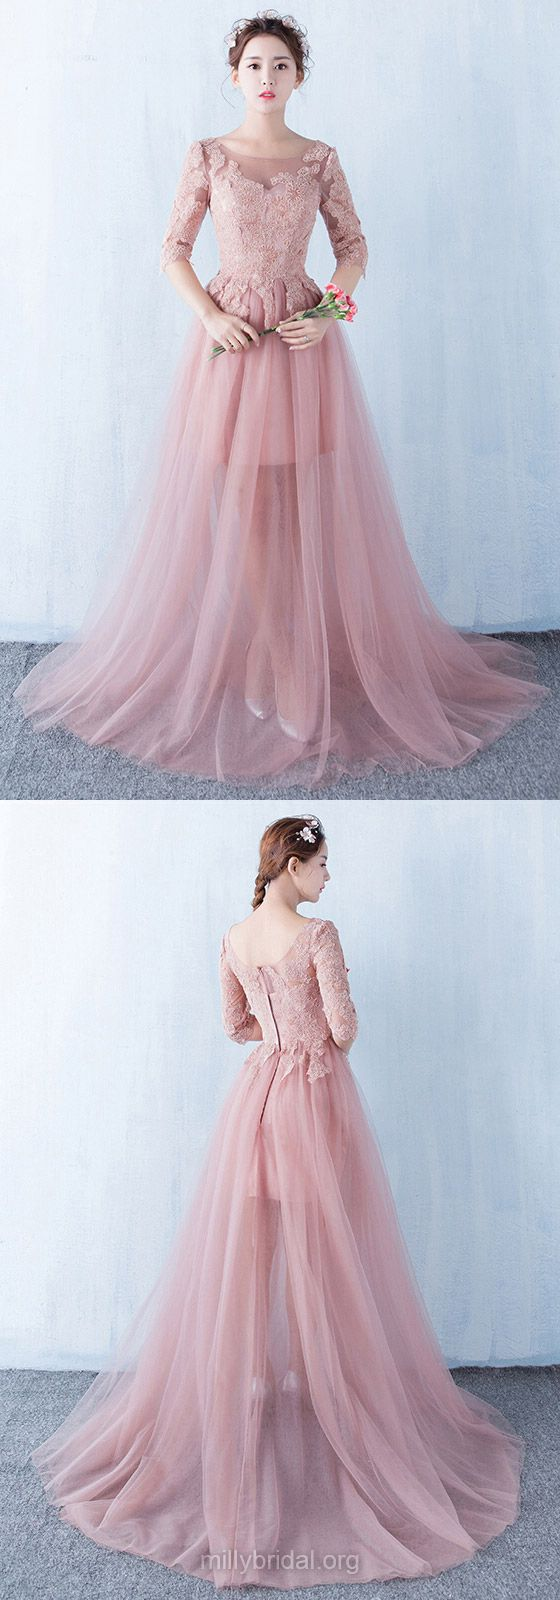 Pink Prom Dresses Long, 2018 Party Dresses Princess, Scoop Neck Tulle Formal Dresses Lace, 1/2 Sleeve Evening Gowns Modest